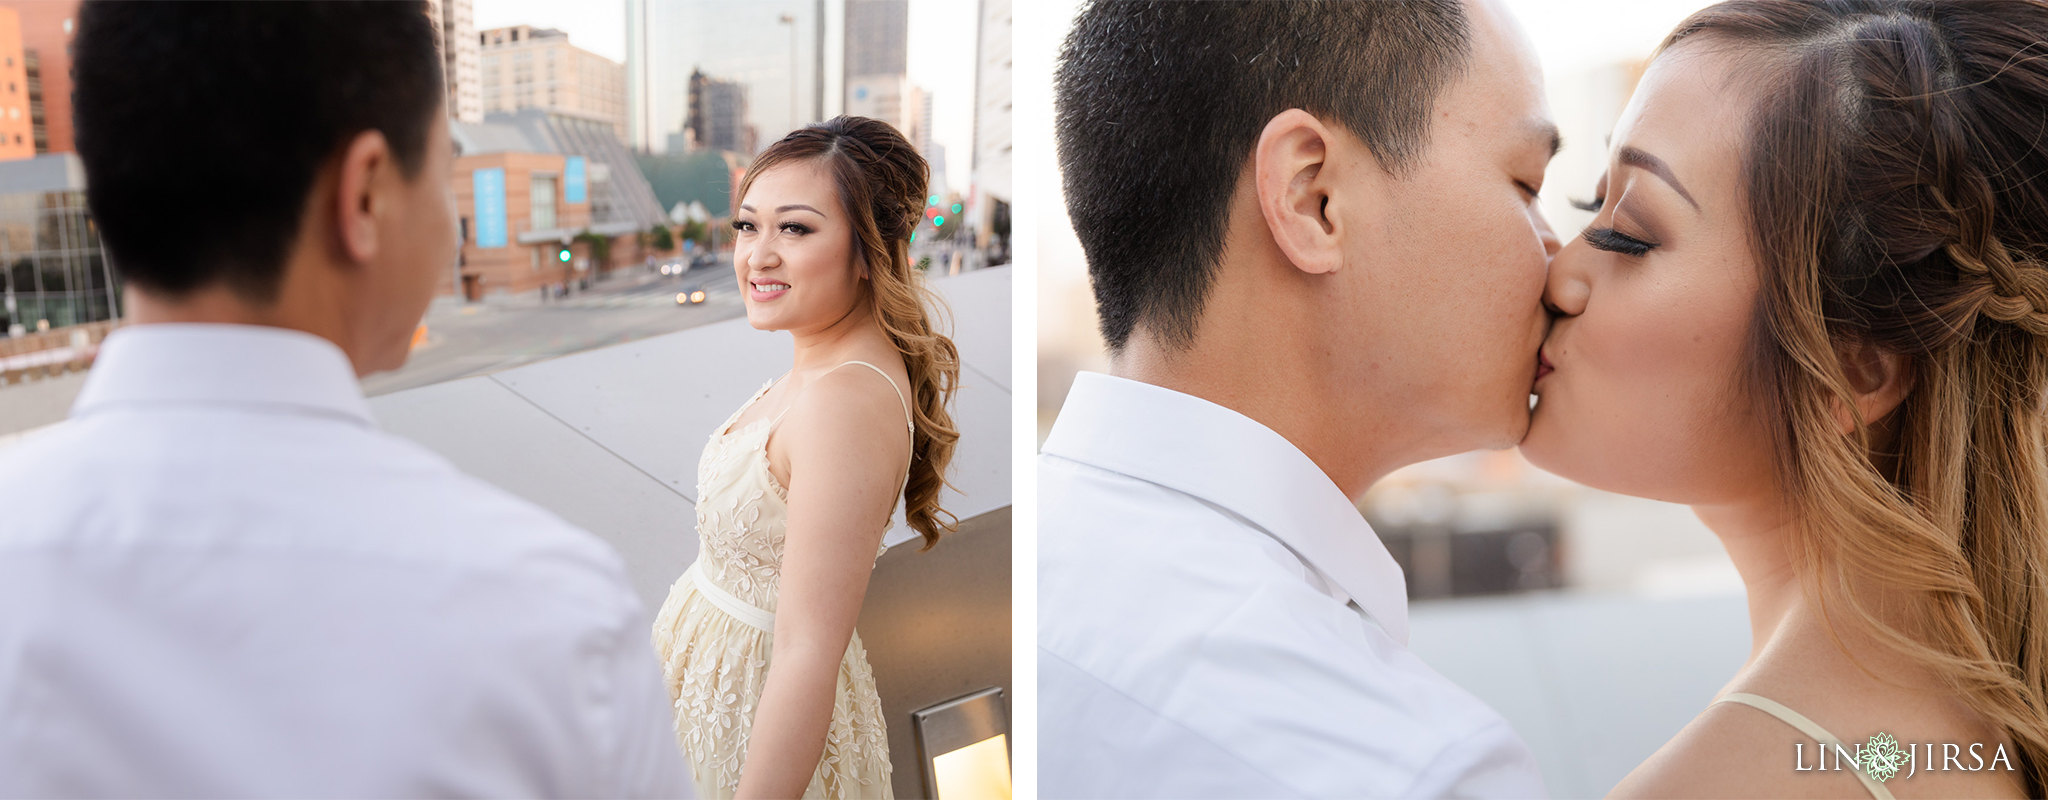 10 Downtown Los Angeles Engagement Photography